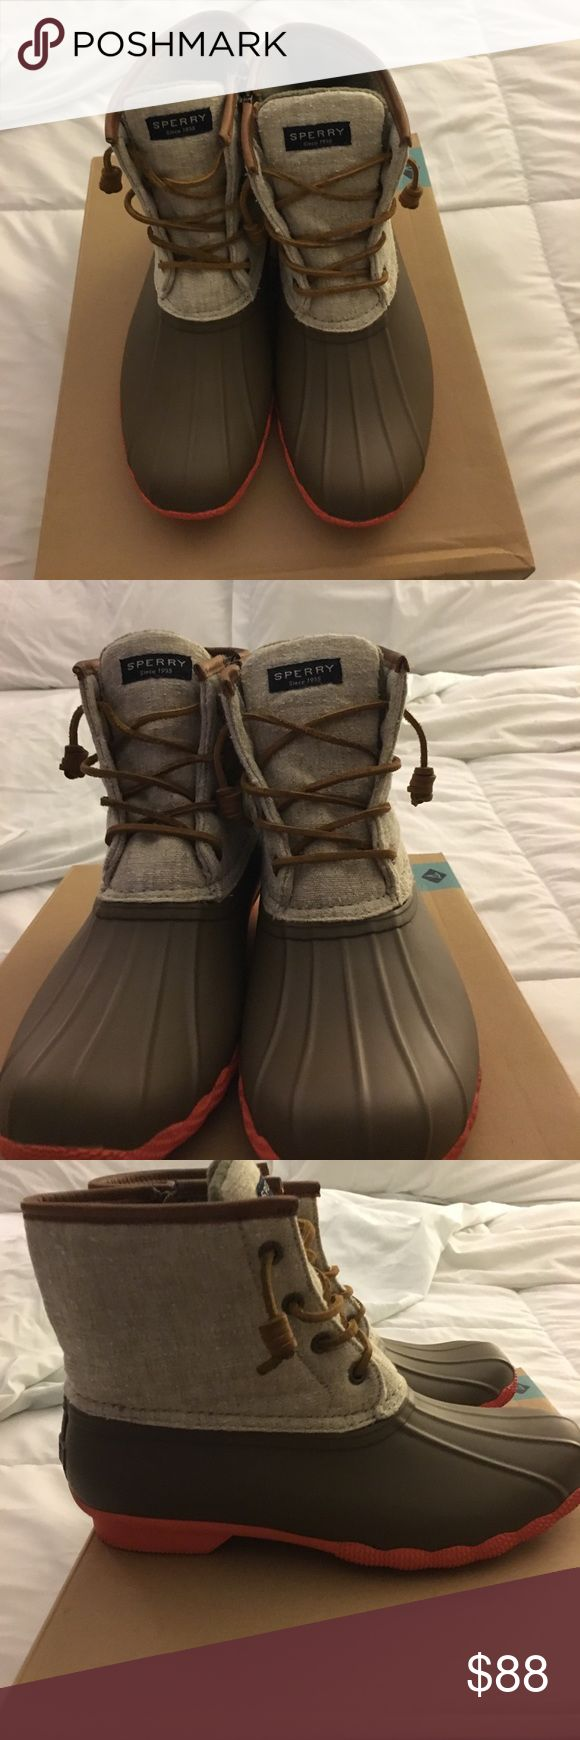 Sperry Saltwater Duck Boots Unique Women's Sperry Duck Boots, Worn once,  has a tiny scuff mark  on bottom of heel (see photo) other than the scuff  they are in Excellent,Execellent Condition!! (Box included) Sperry Shoes Winter & Rain Boots